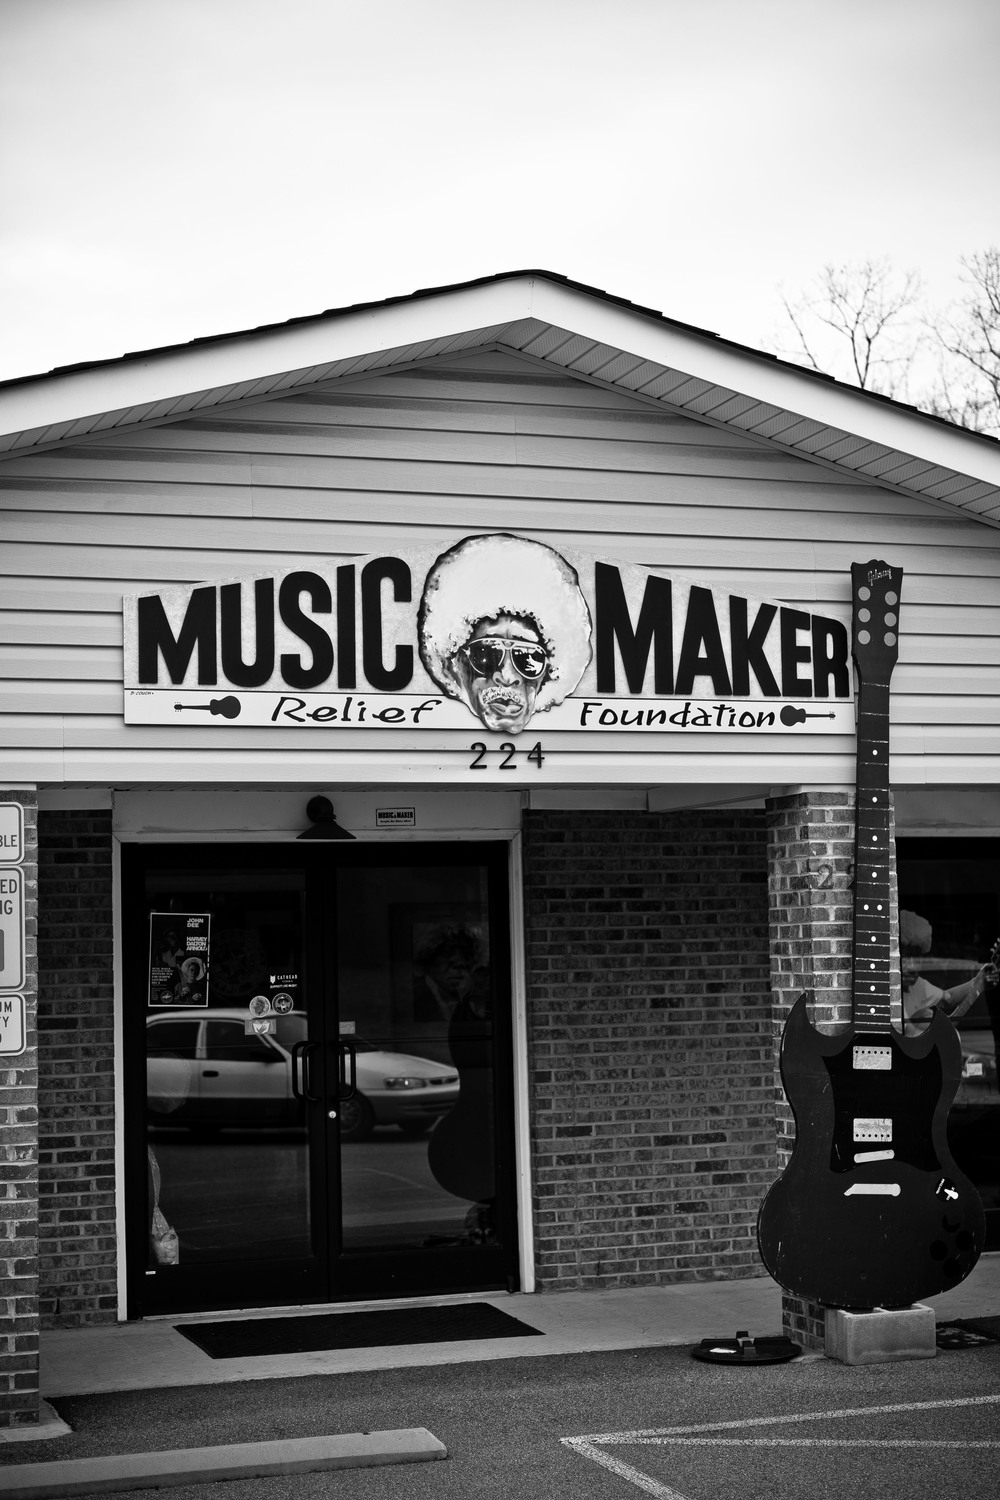 The Music Maker Relief Foundation